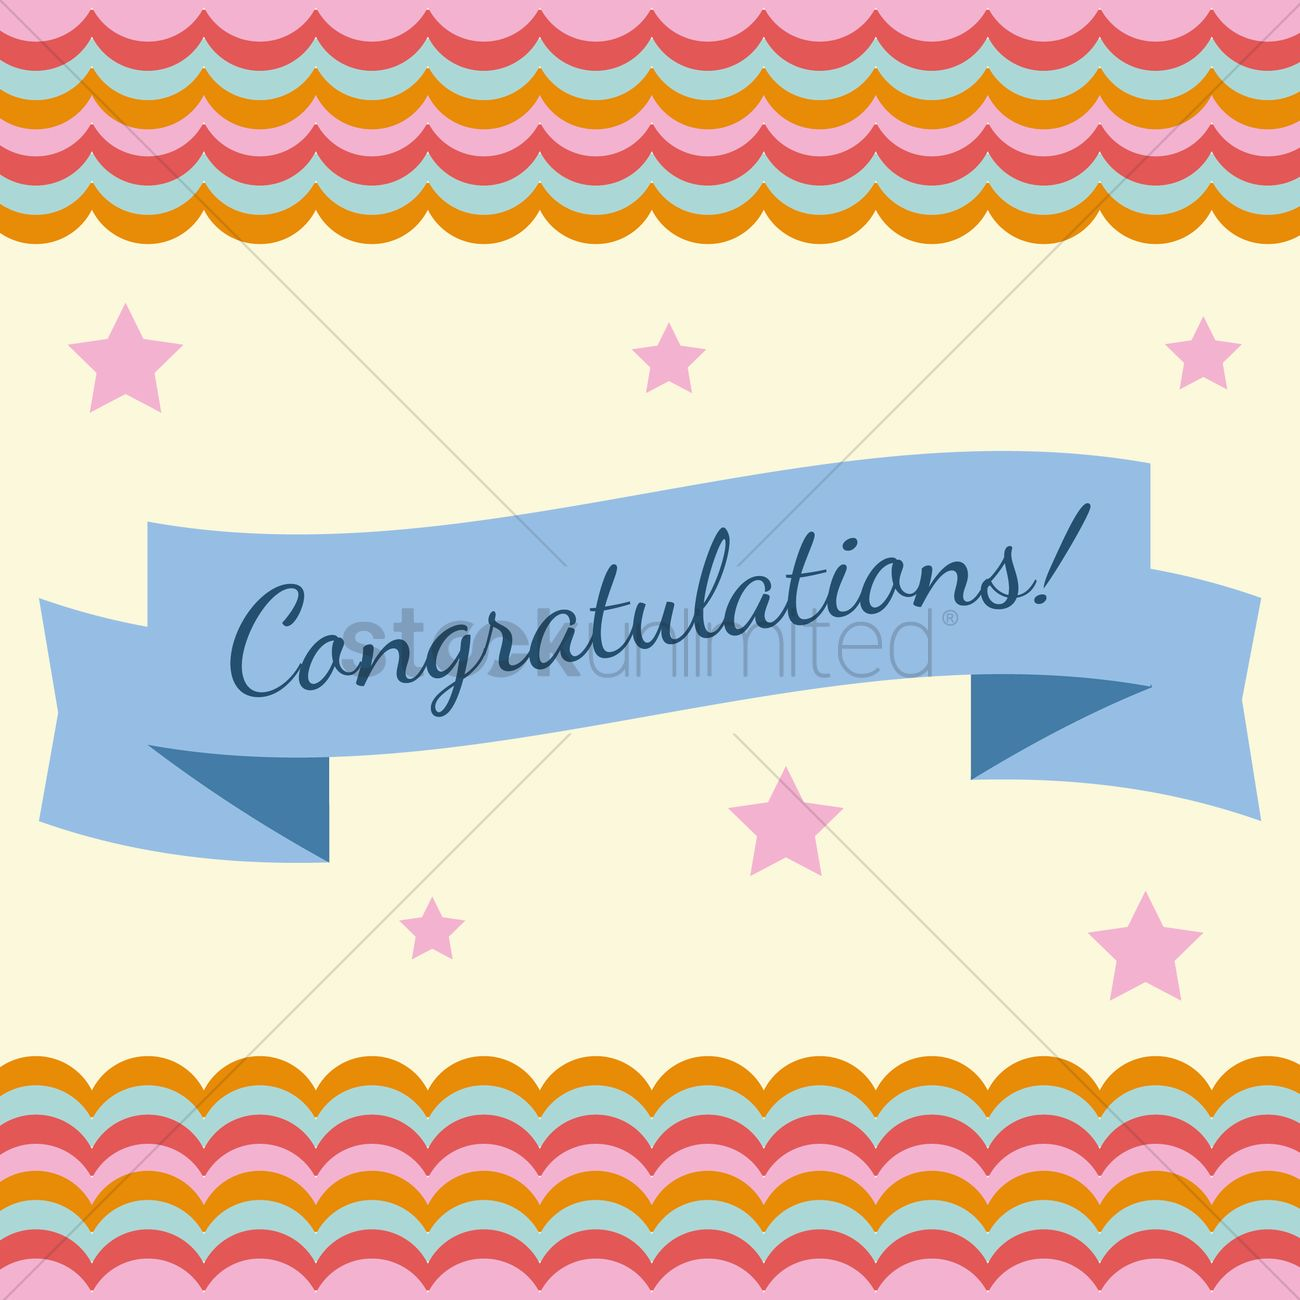 congratulations banner vector image 1398849 stockunlimited